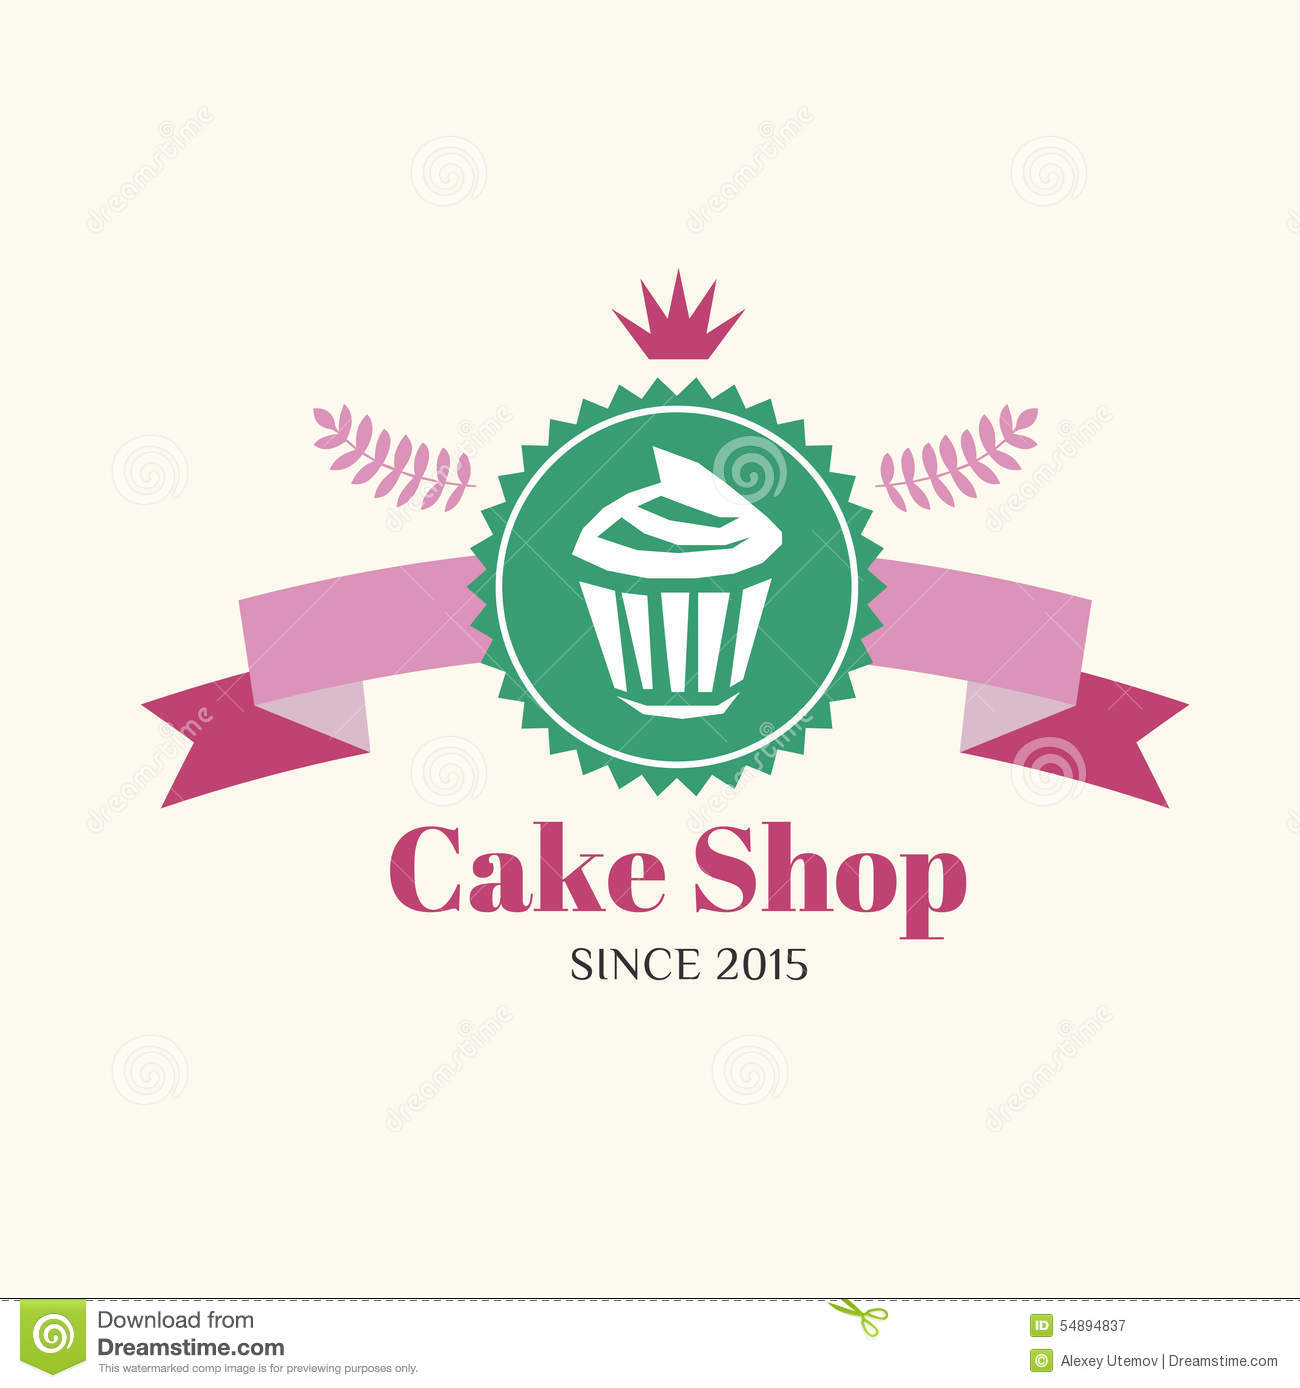 Vintage Cake Design Vector : Abstract Vector Cake Vintage Logo Element. Cakes Stock ...